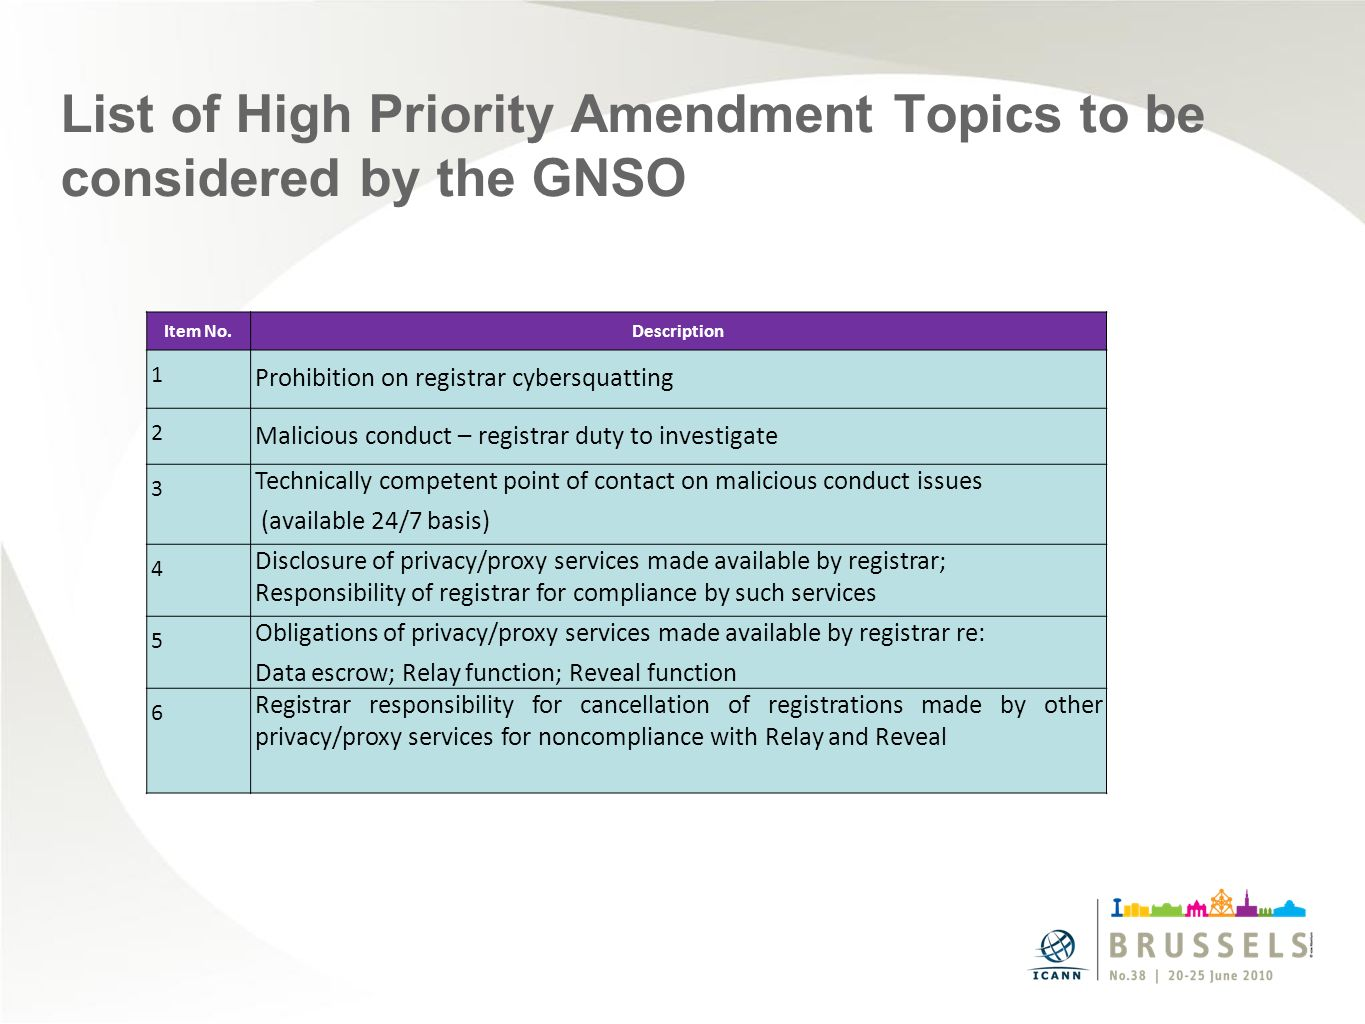 List of High Priority Amendment Topics to be considered by the GNSO Item No.Description 1 Prohibition on registrar cybersquatting 2 Malicious conduct – registrar duty to investigate 3 Technically competent point of contact on malicious conduct issues (available 24/7 basis) 4 Disclosure of privacy/proxy services made available by registrar; Responsibility of registrar for compliance by such services 5 Obligations of privacy/proxy services made available by registrar re: Data escrow; Relay function; Reveal function 6 Registrar responsibility for cancellation of registrations made by other privacy/proxy services for noncompliance with Relay and Reveal